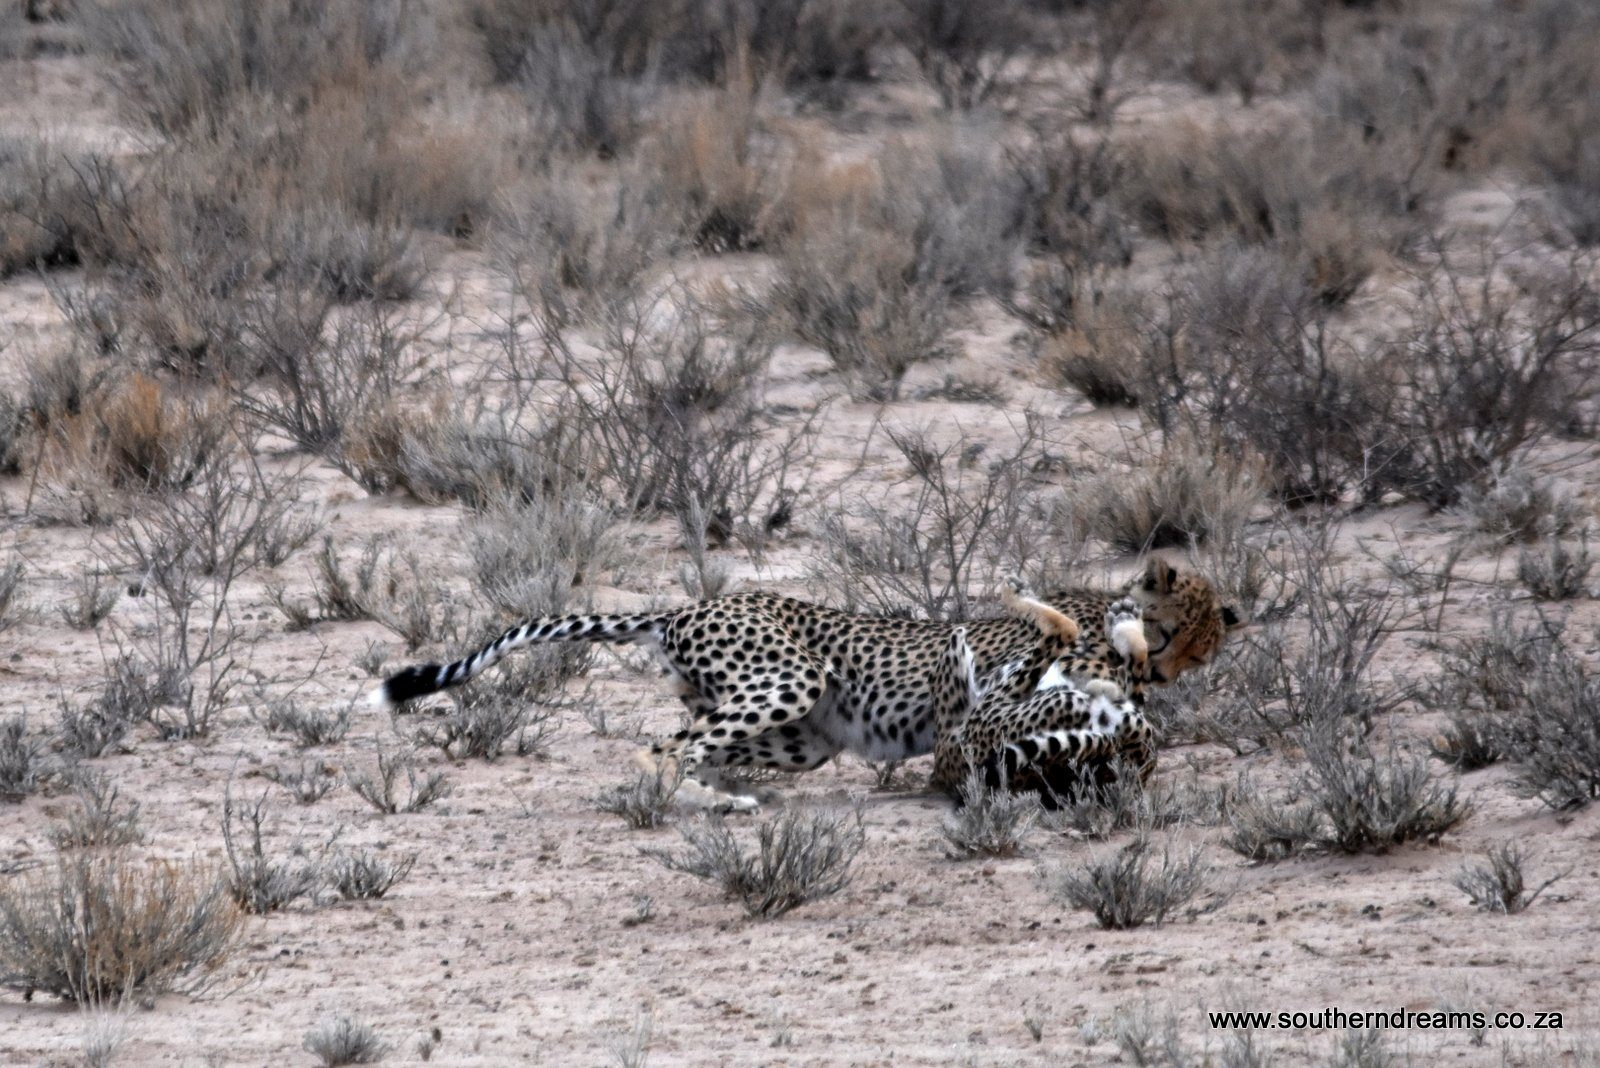 Cheetah Corinne and 2 boys at Kgalagadi